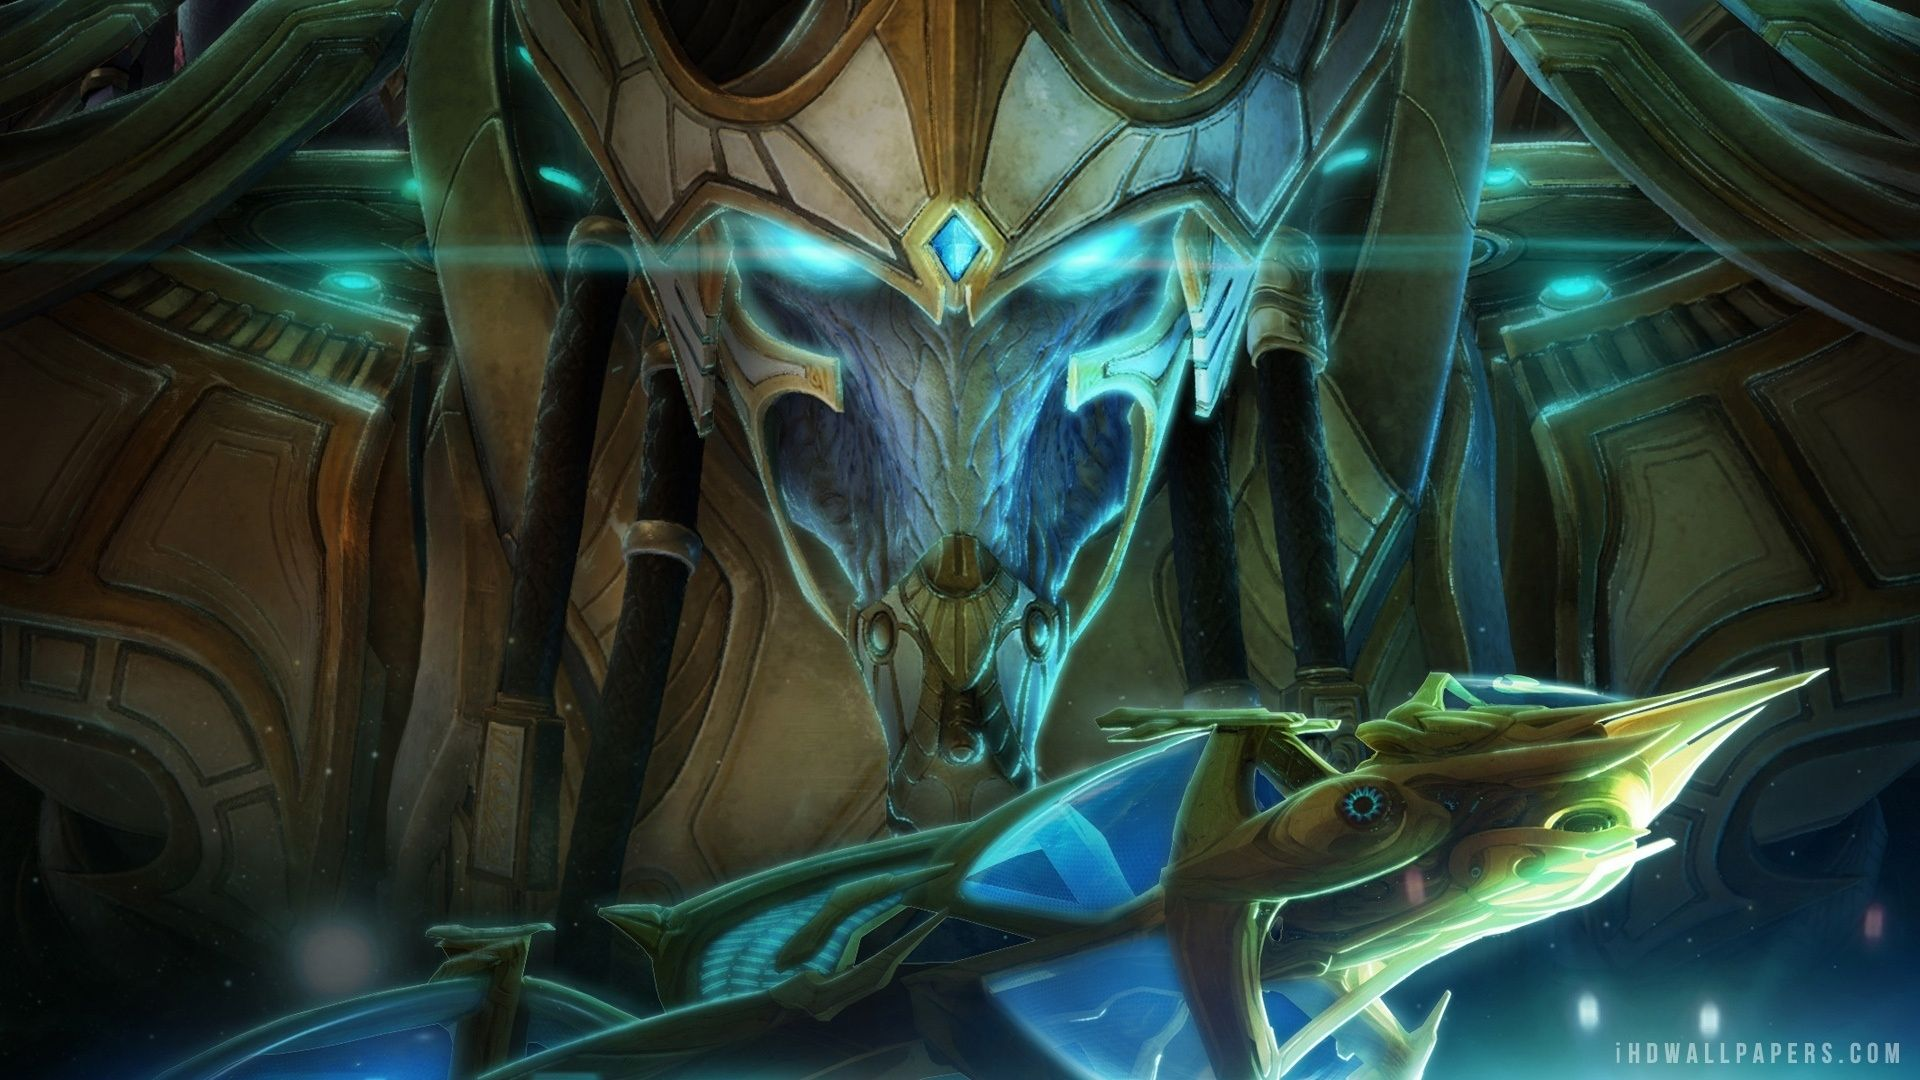 Starcraft 2 Protoss Wallpaper Hd posted by Ethan Sellers 1920x1080